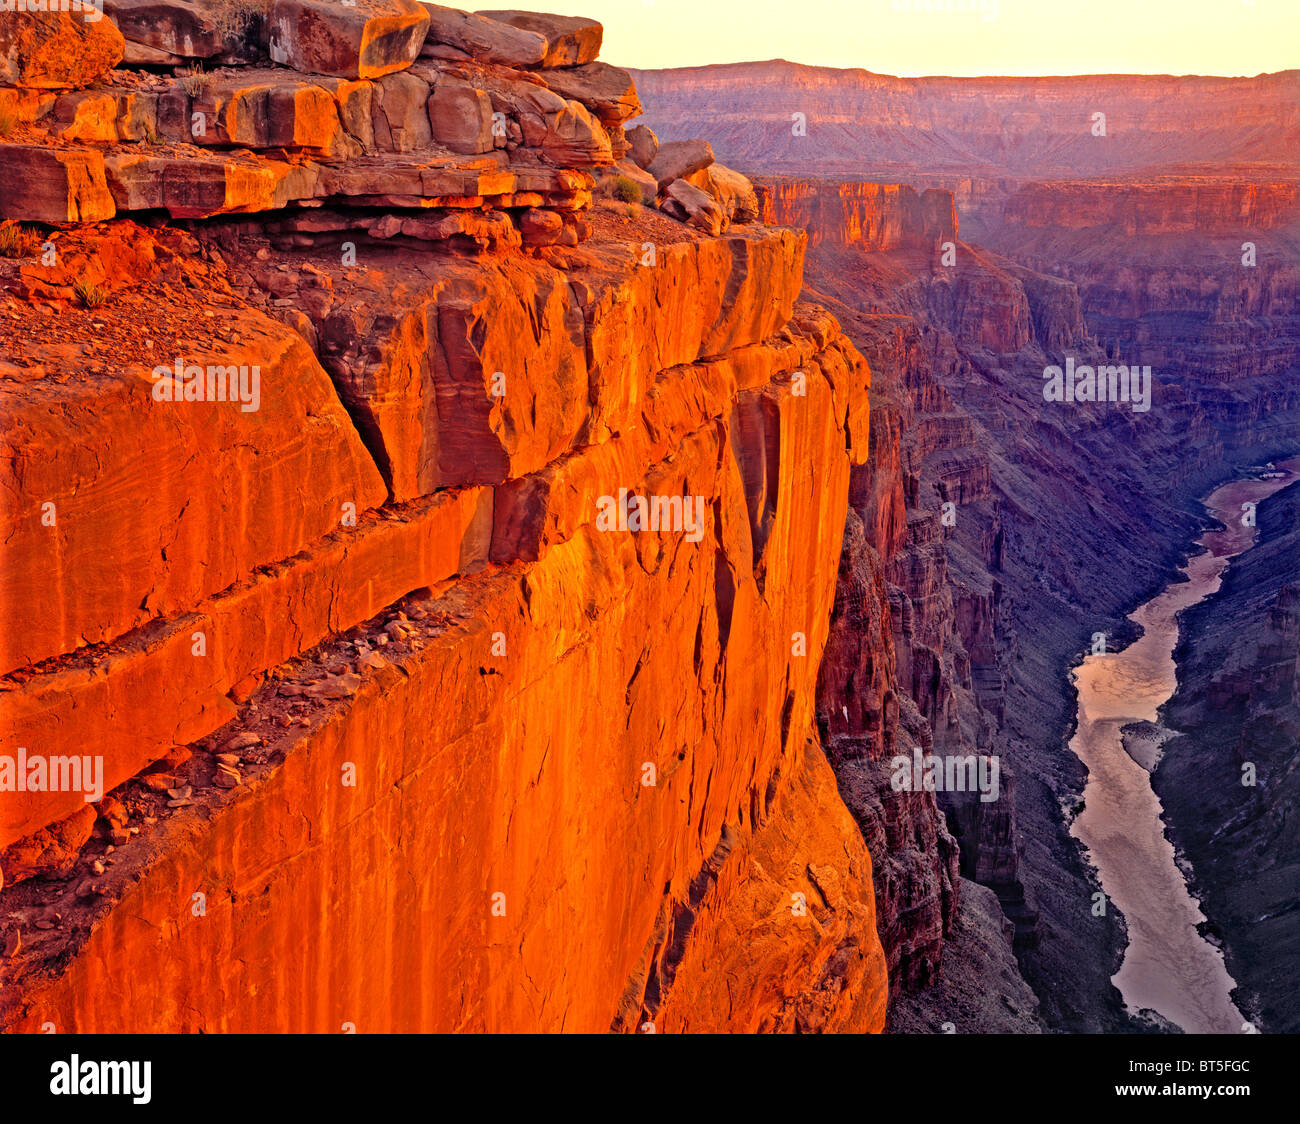 Sonnenaufgang über den Colorado River bei Toroweep, Grand Canyon Nationalpark in Arizona Stockfoto